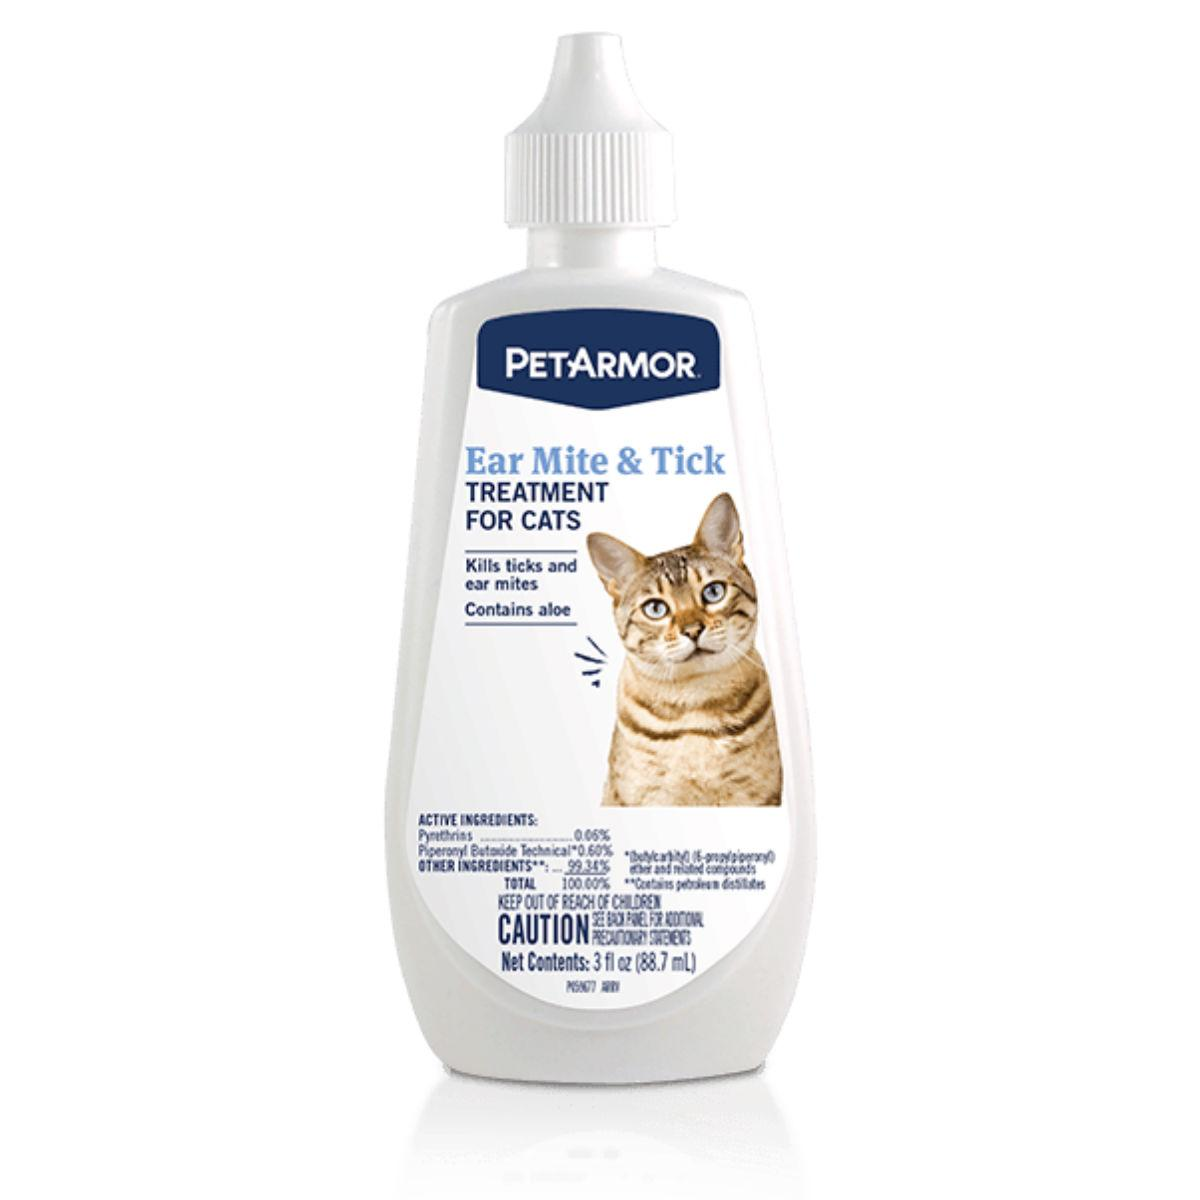 PetArmor Ear Mite and Tick Treatment for Cats